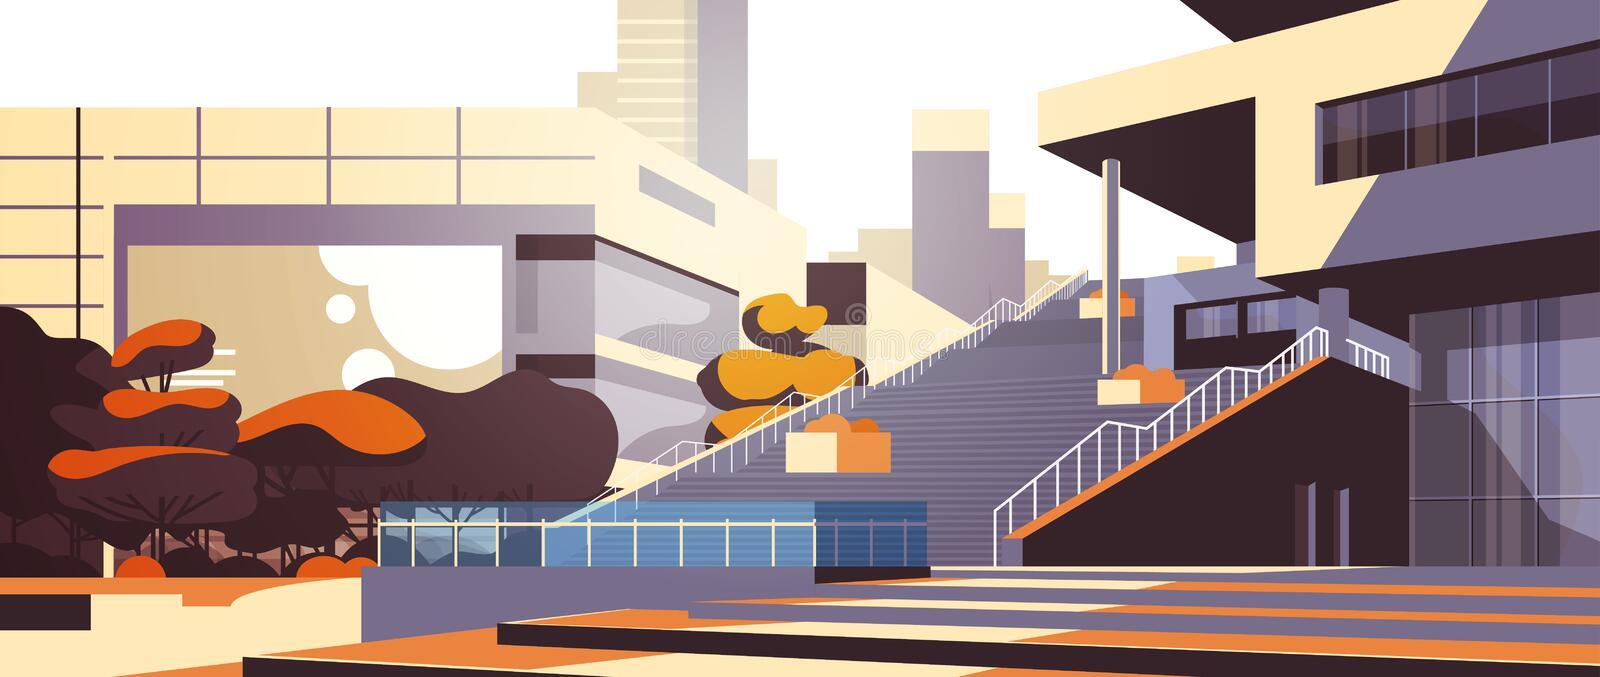 Modern office building stairs exterior view over skyscraper buildings cityscape background horizontal flat. Vector illustration stock illustration